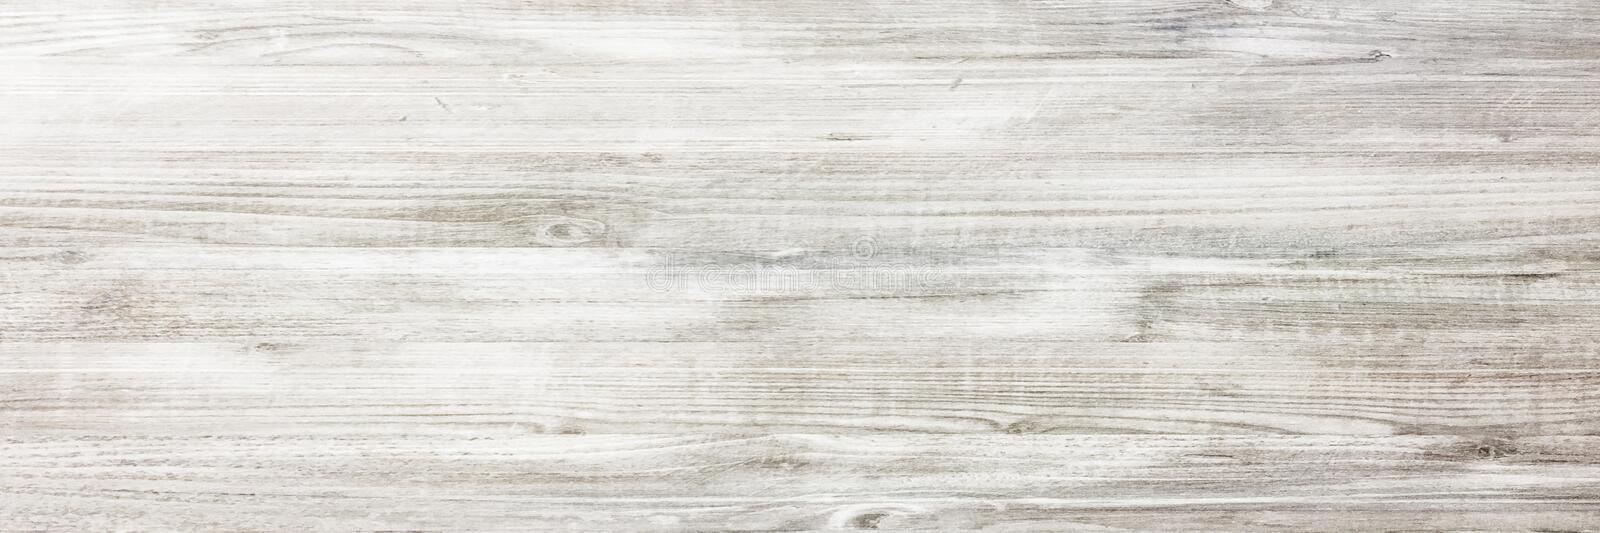 Washed wood texture, white wooden abstract background. Wood washed background, white texture wooden abstract stock image